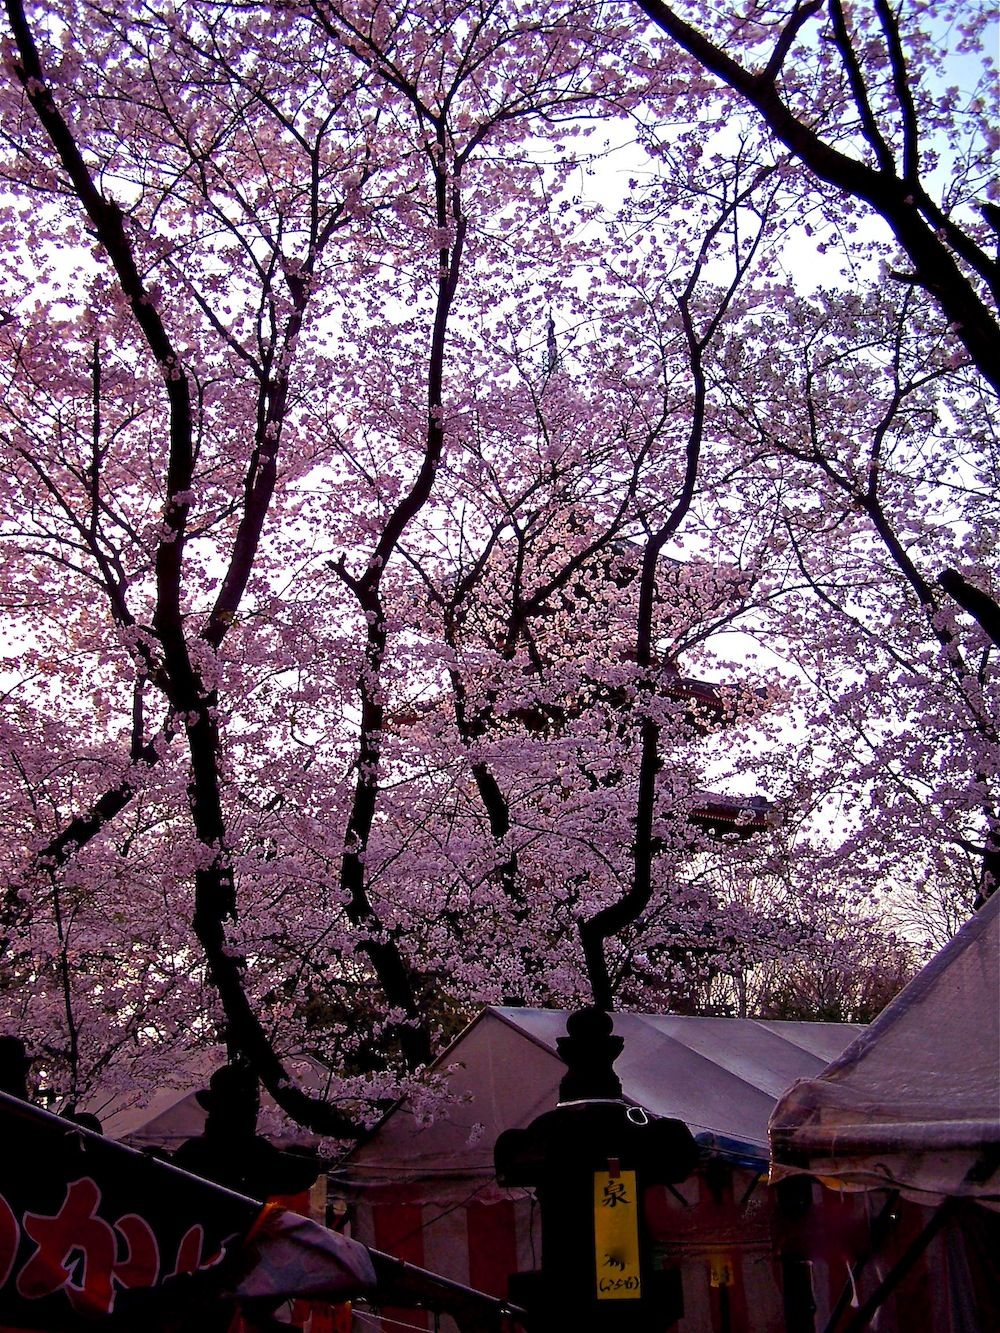 One Of My Favorite Times Of Year To Visit Japan Is During Sakura The Annual Spring Cherry Blossom Festival When The Country Is Bursting With Blossoms A Jepang